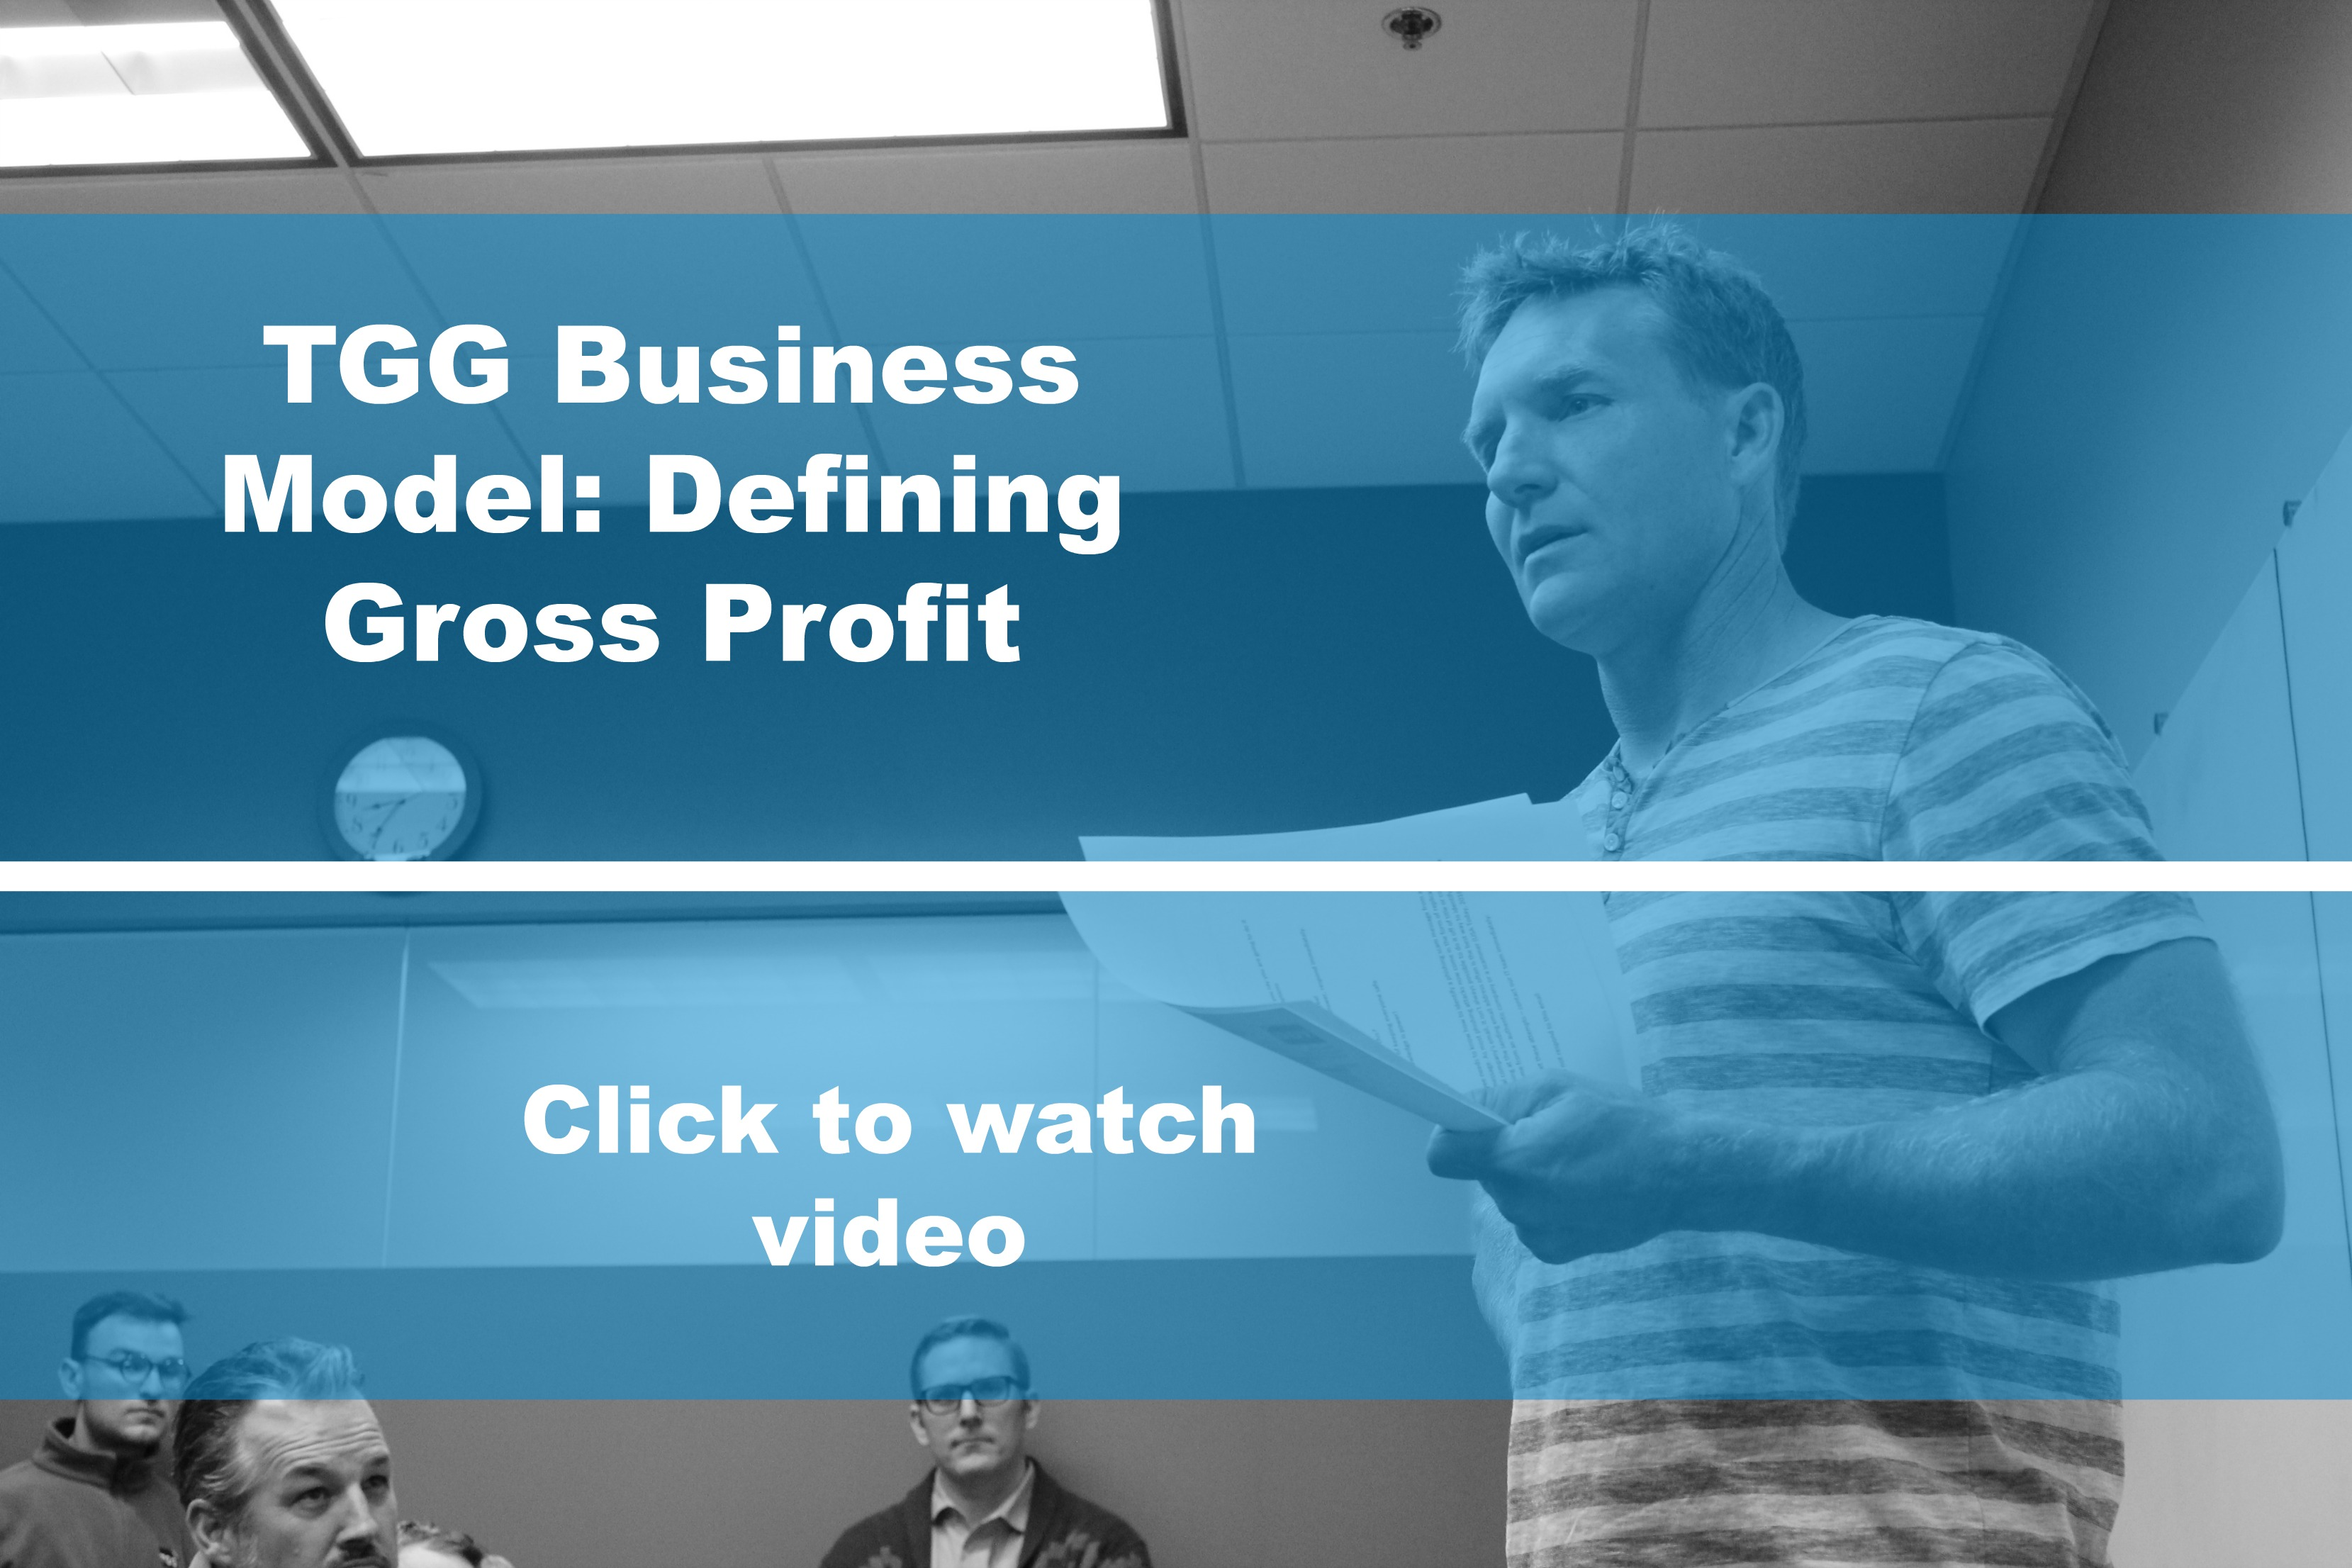 The Basic Business Model- Defining Gross Profit